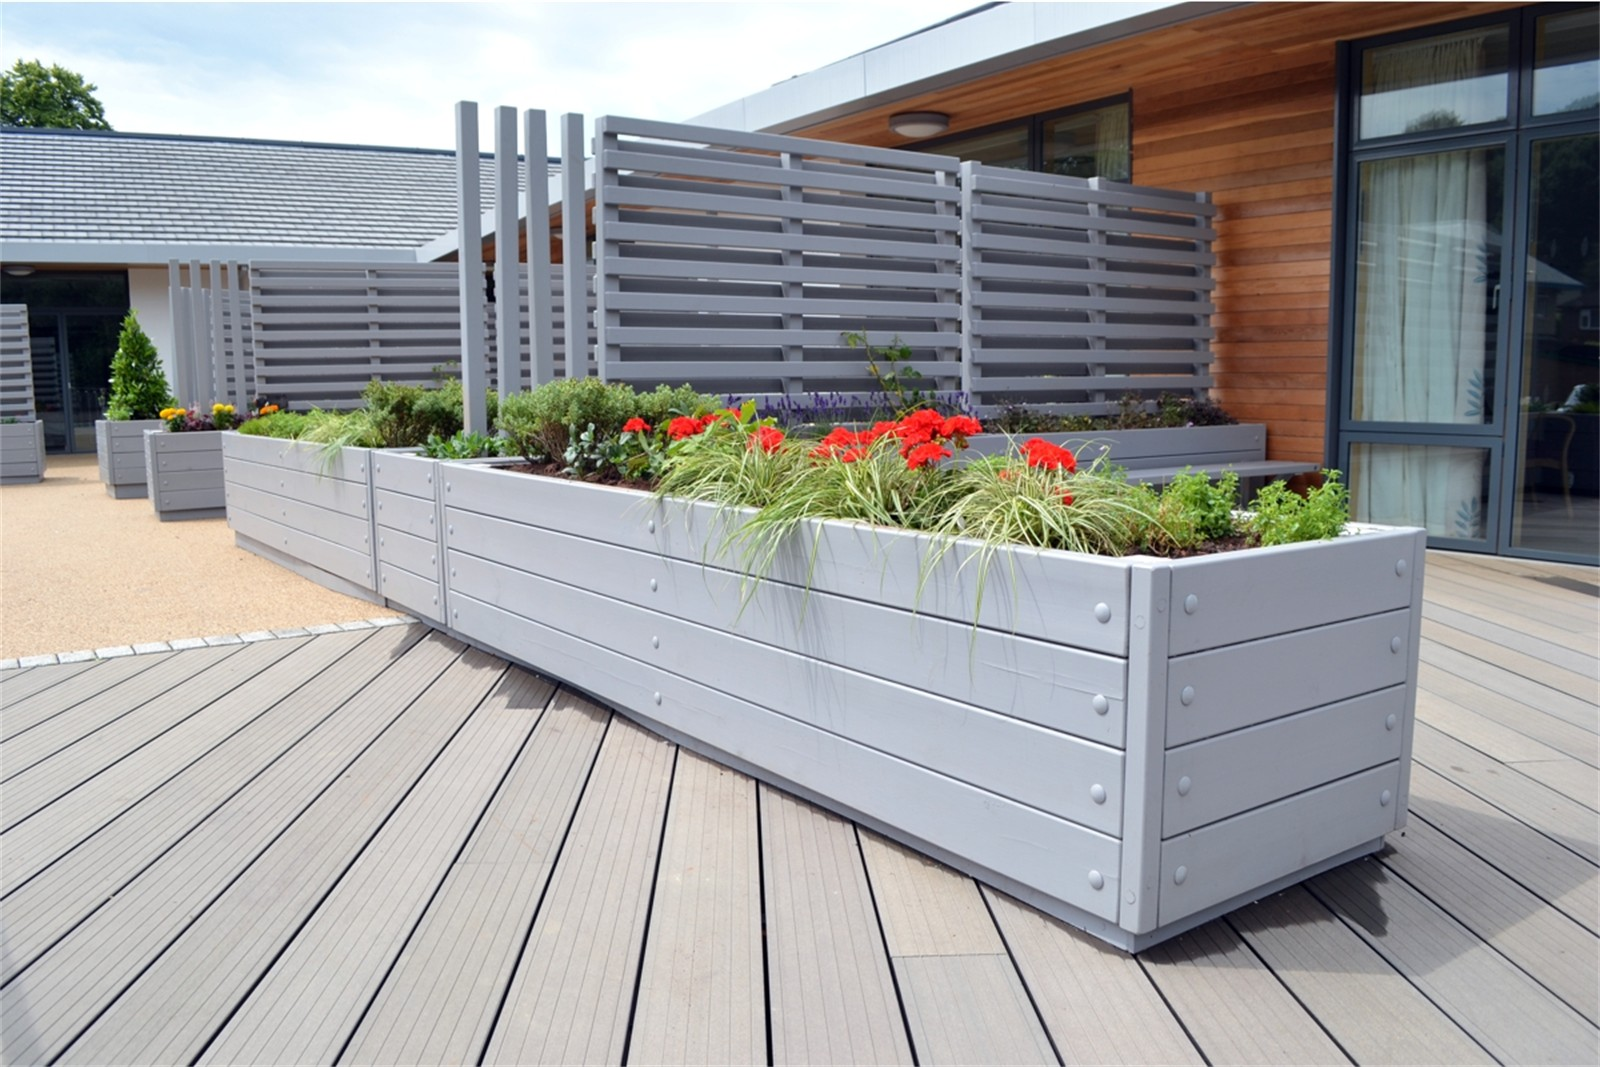 38pgr09 - Grenadier roof terrace planters with slatted screens